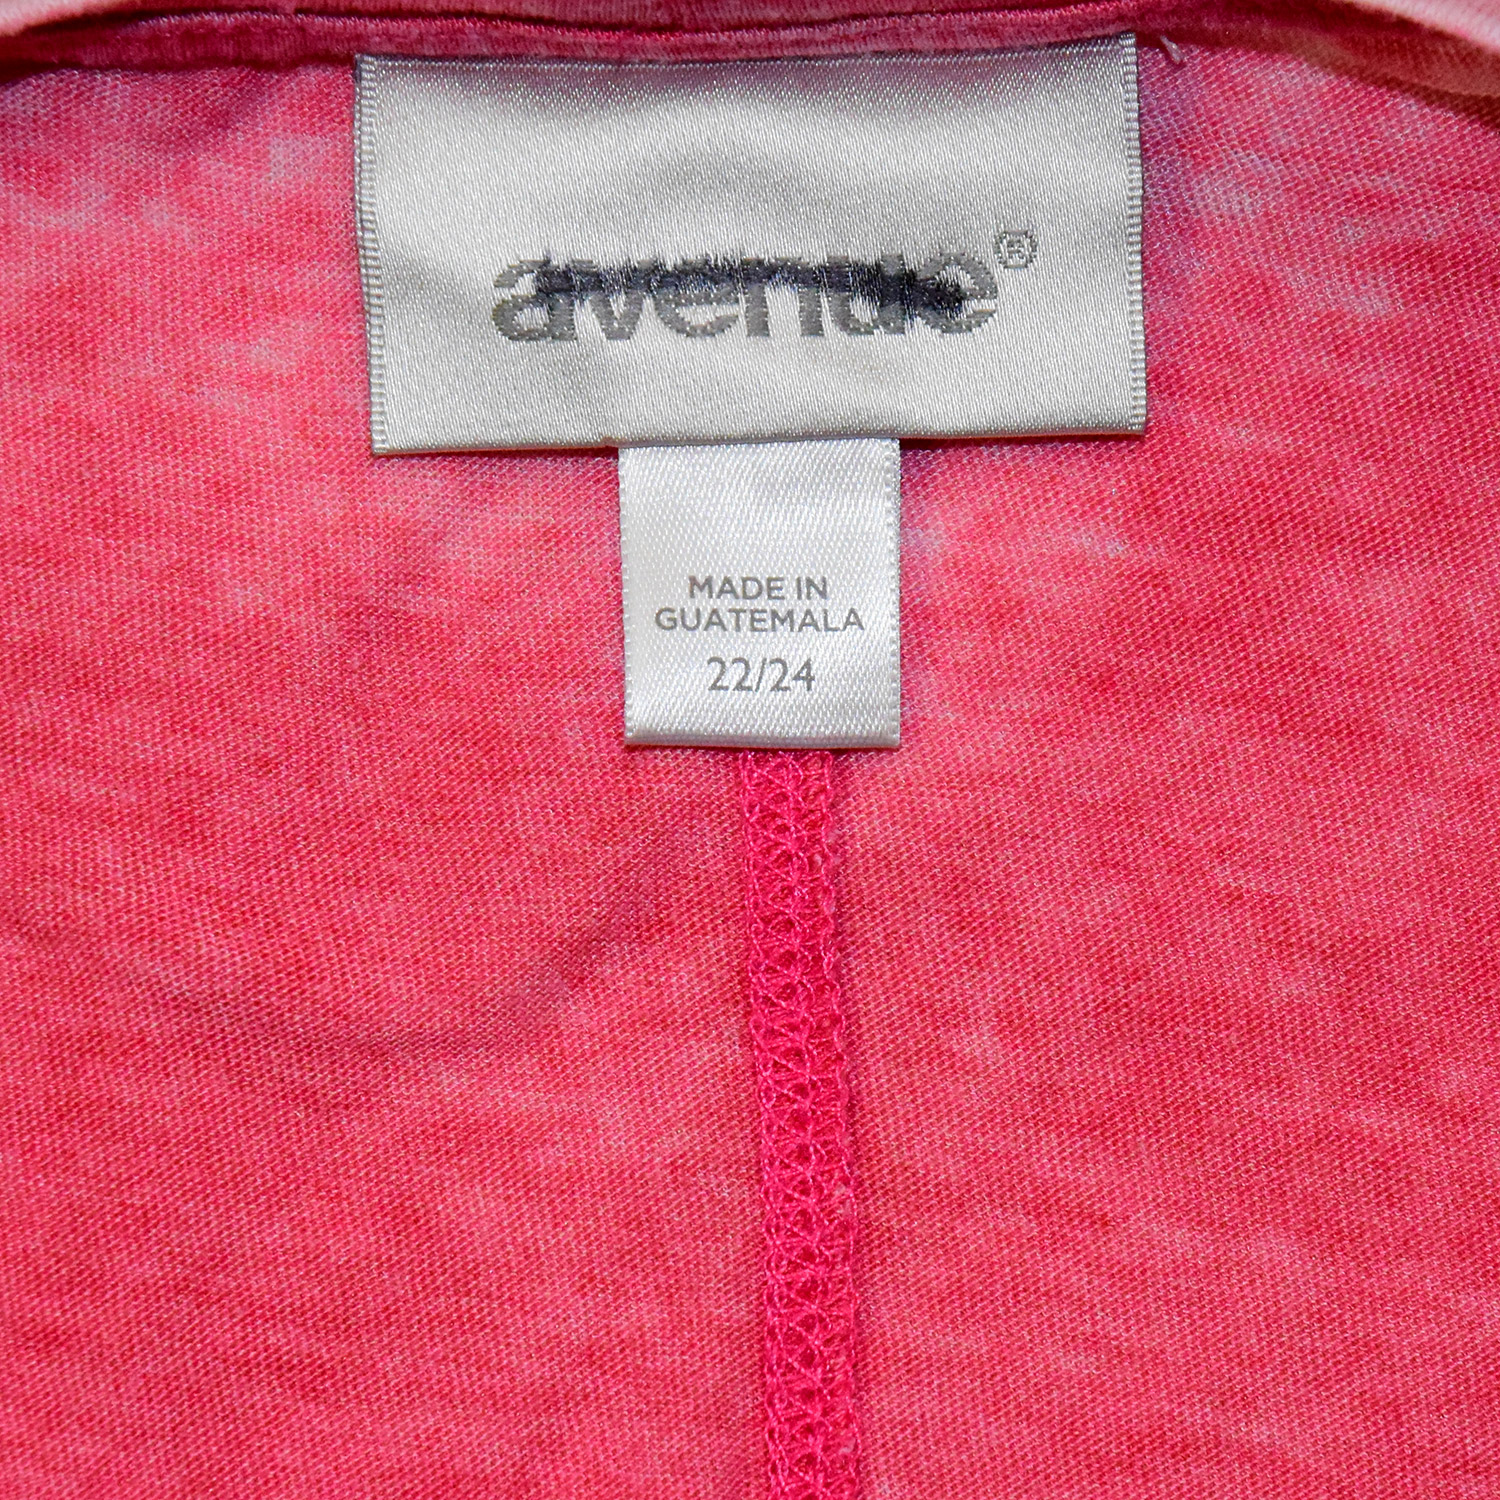 Avenue Super Soft Tee\'s in 2 Colors - 48pcs